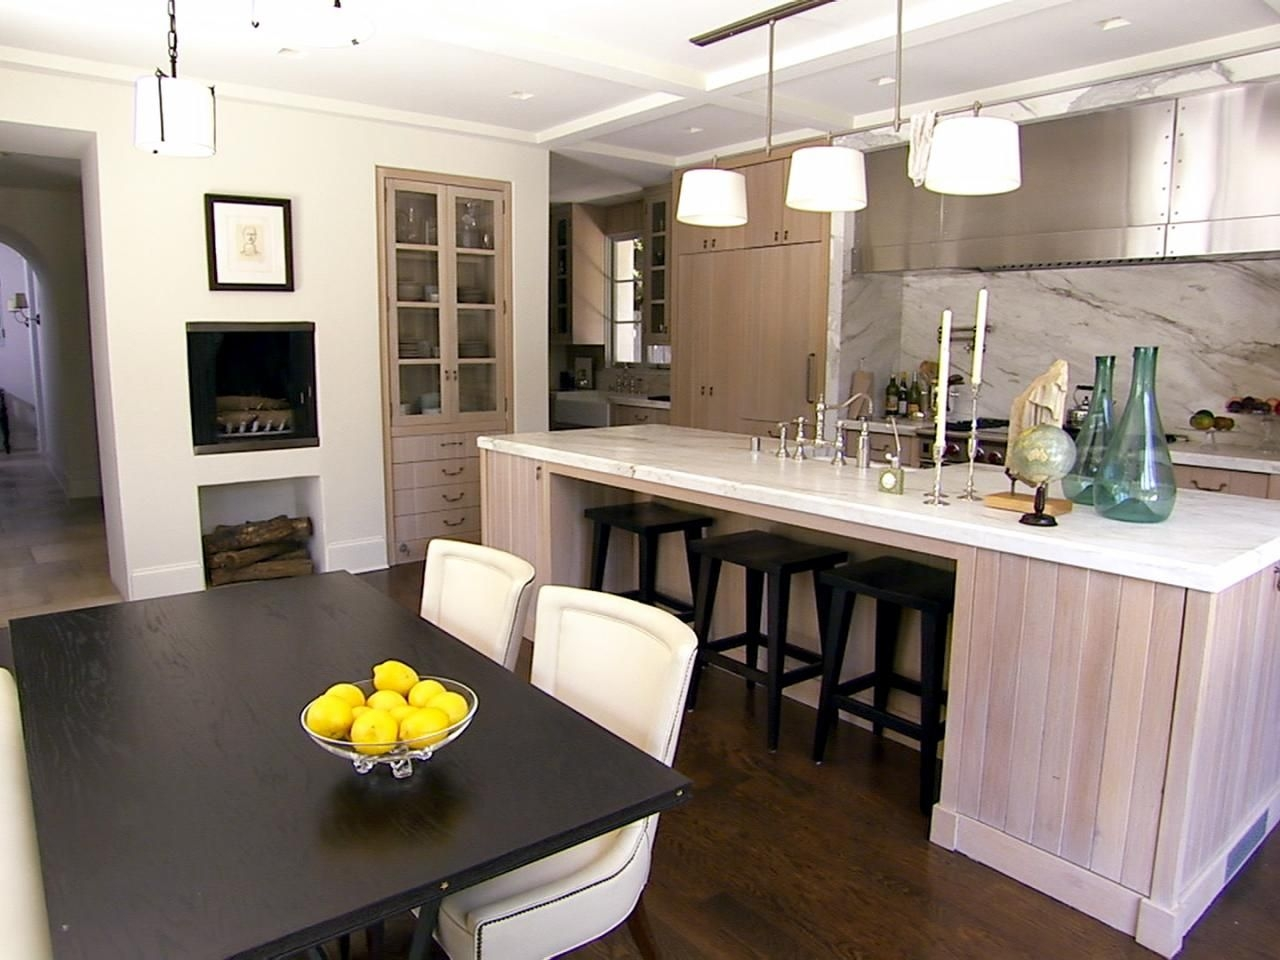 Peninsula Kitchen Design Pictures Ideas  Tips From Hgtv  Hgtv